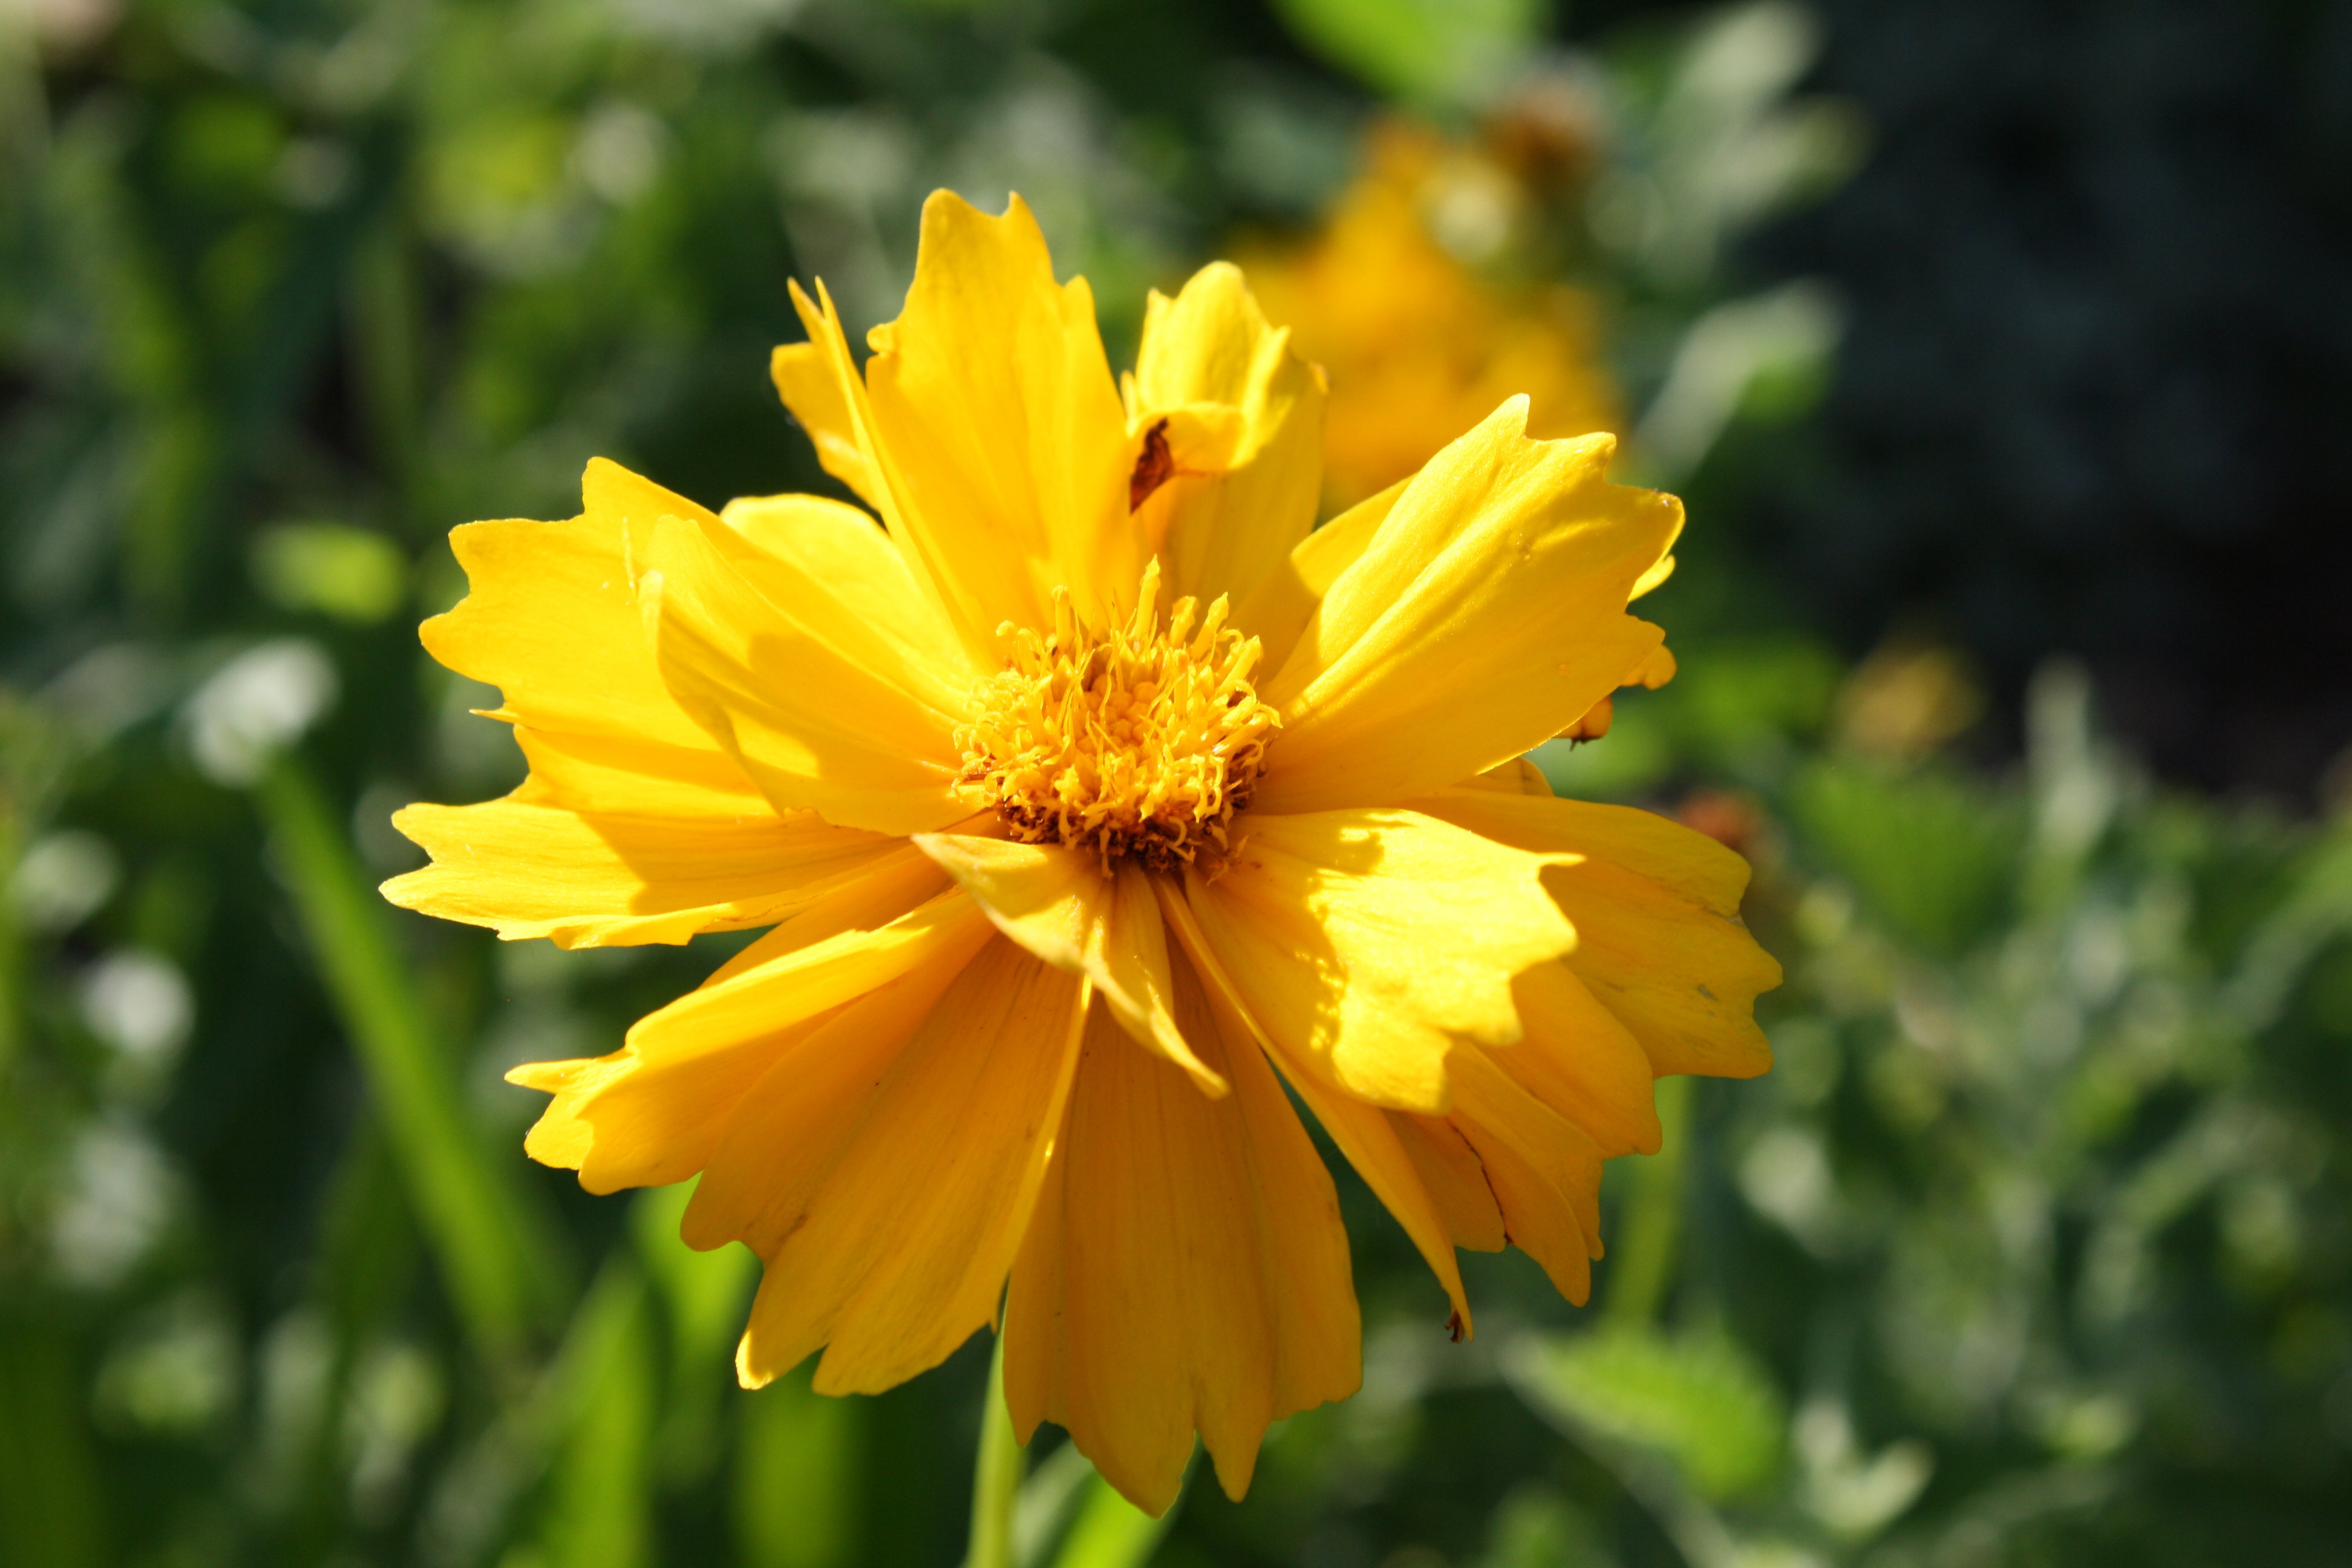 Golden yellow coreopsis flower with frilly petals picture free golden yellow coreopsis flower with frilly petals mightylinksfo